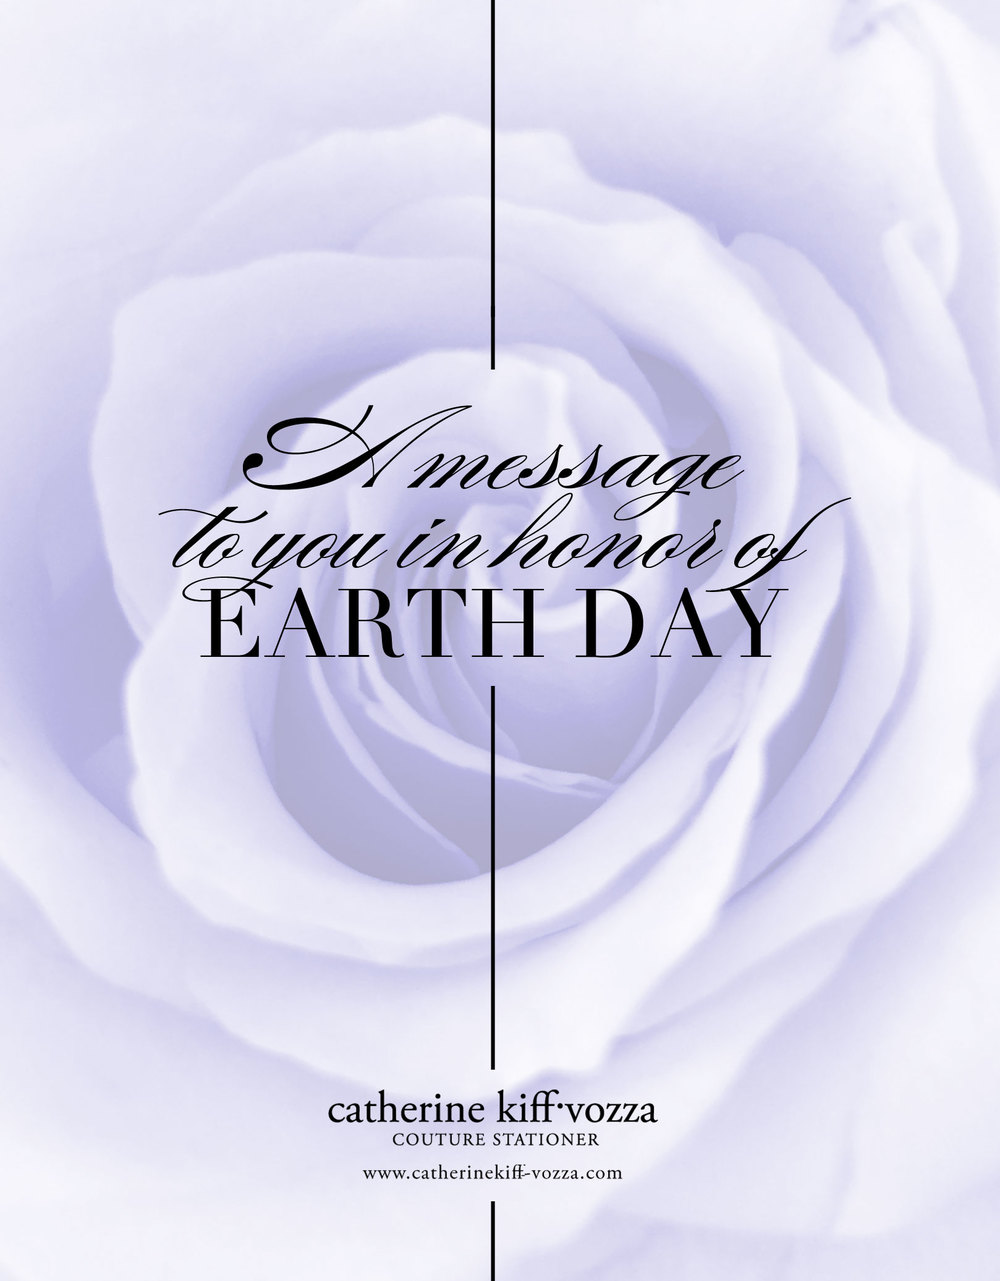 A message to our clients in honor of Earth Day